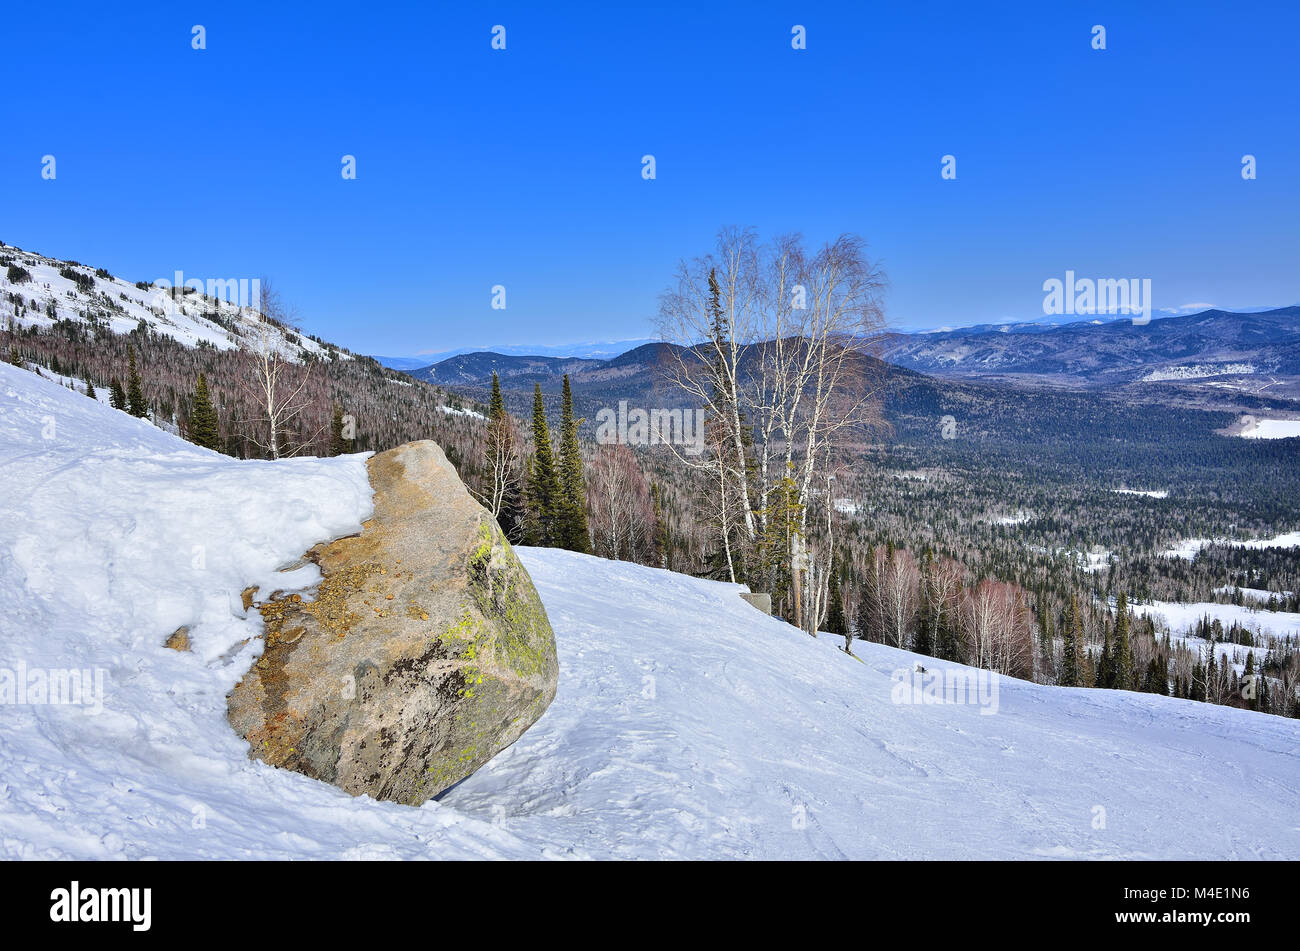 Early spring landscape in the mountains of Western Siberia - Stock Image